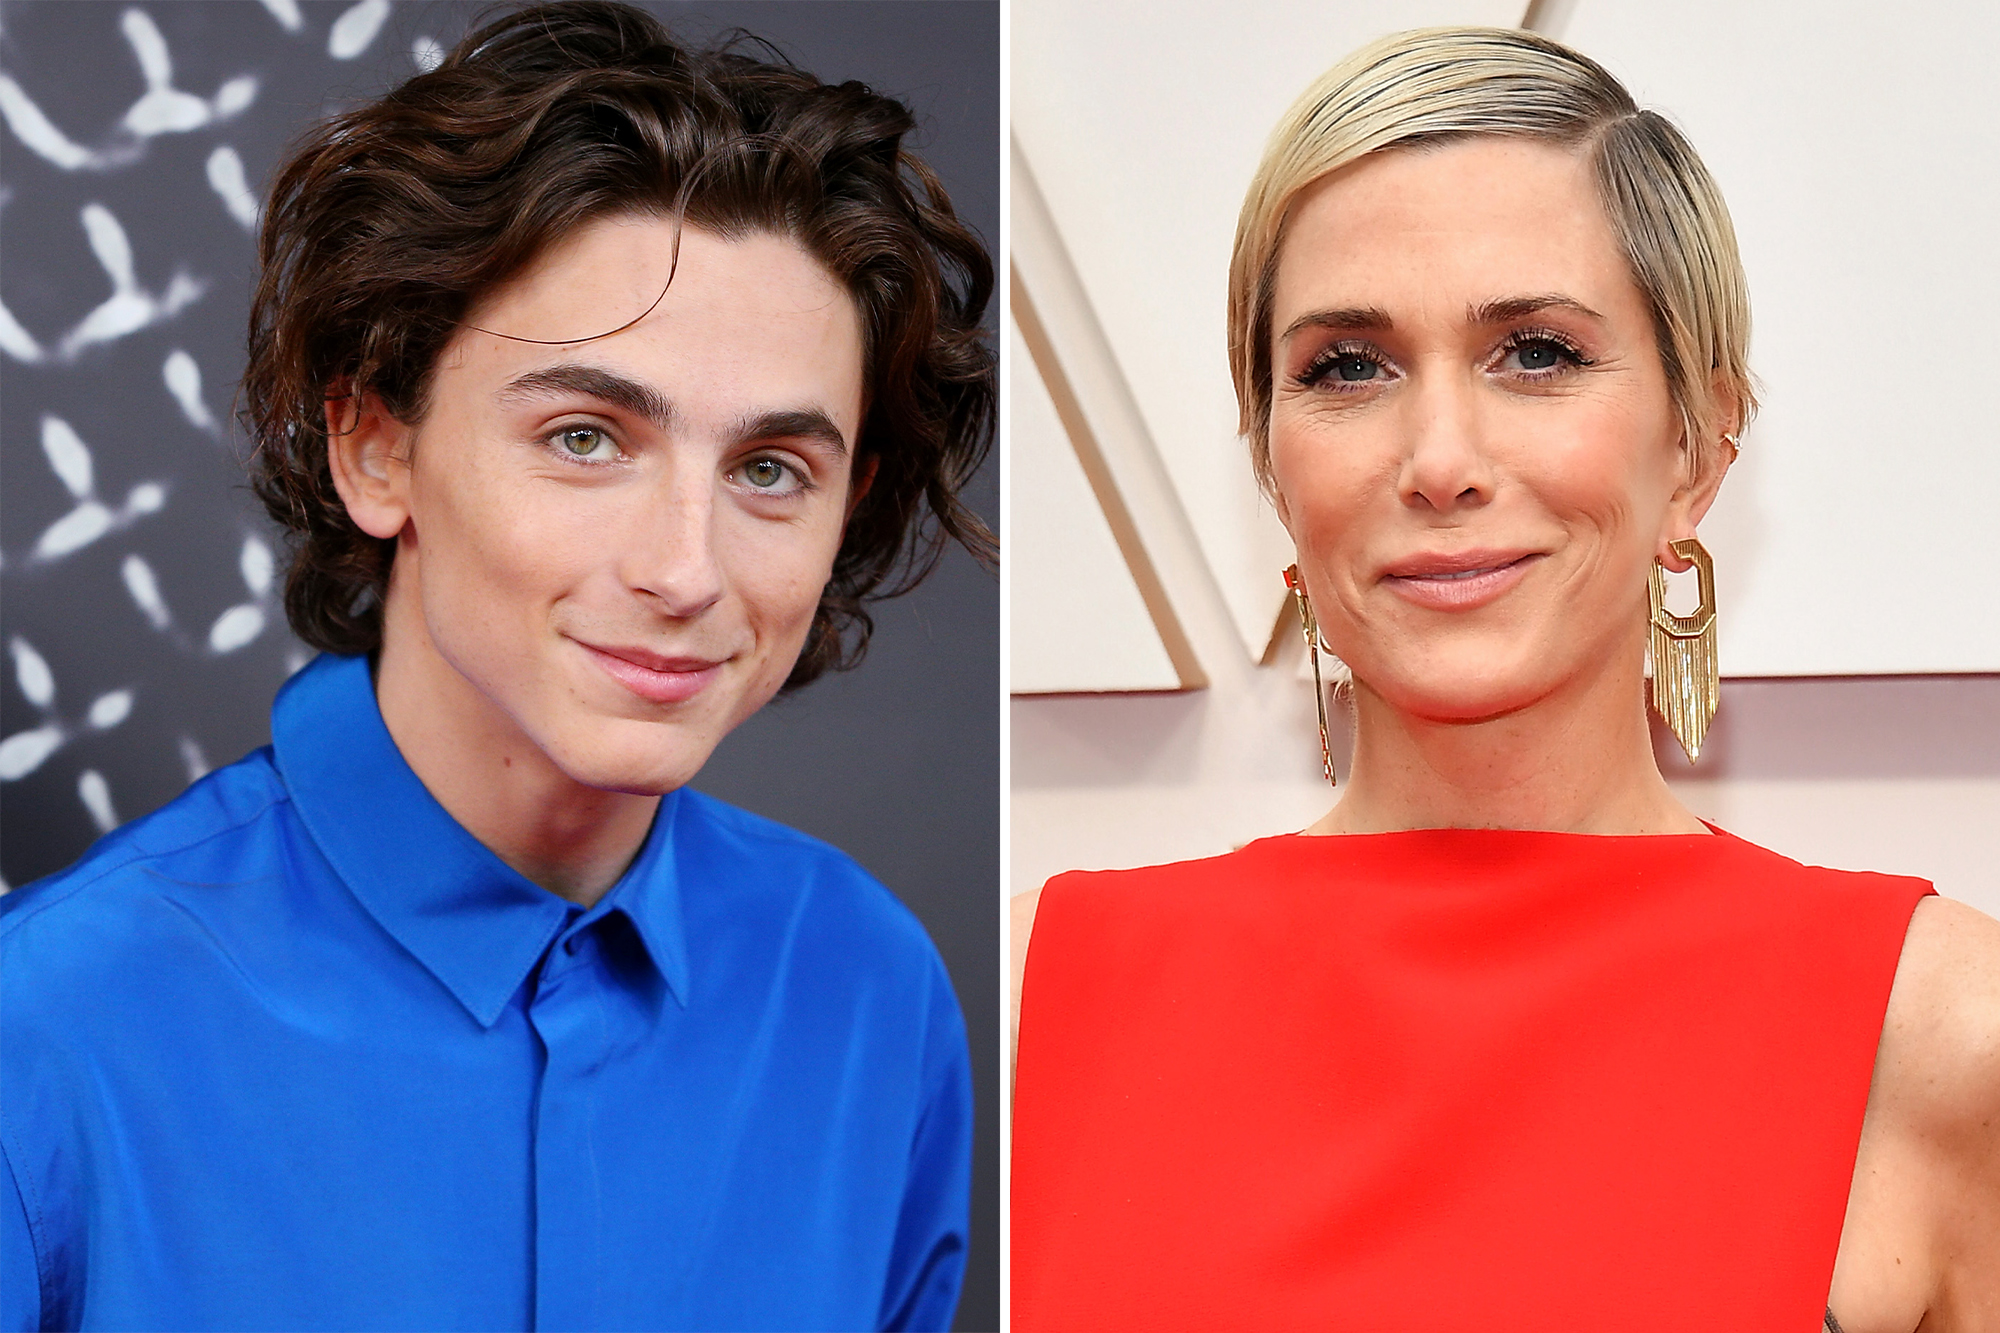 'SNL' announces final 2020 hosts: Kristen Wiig, Timothée Chalamet